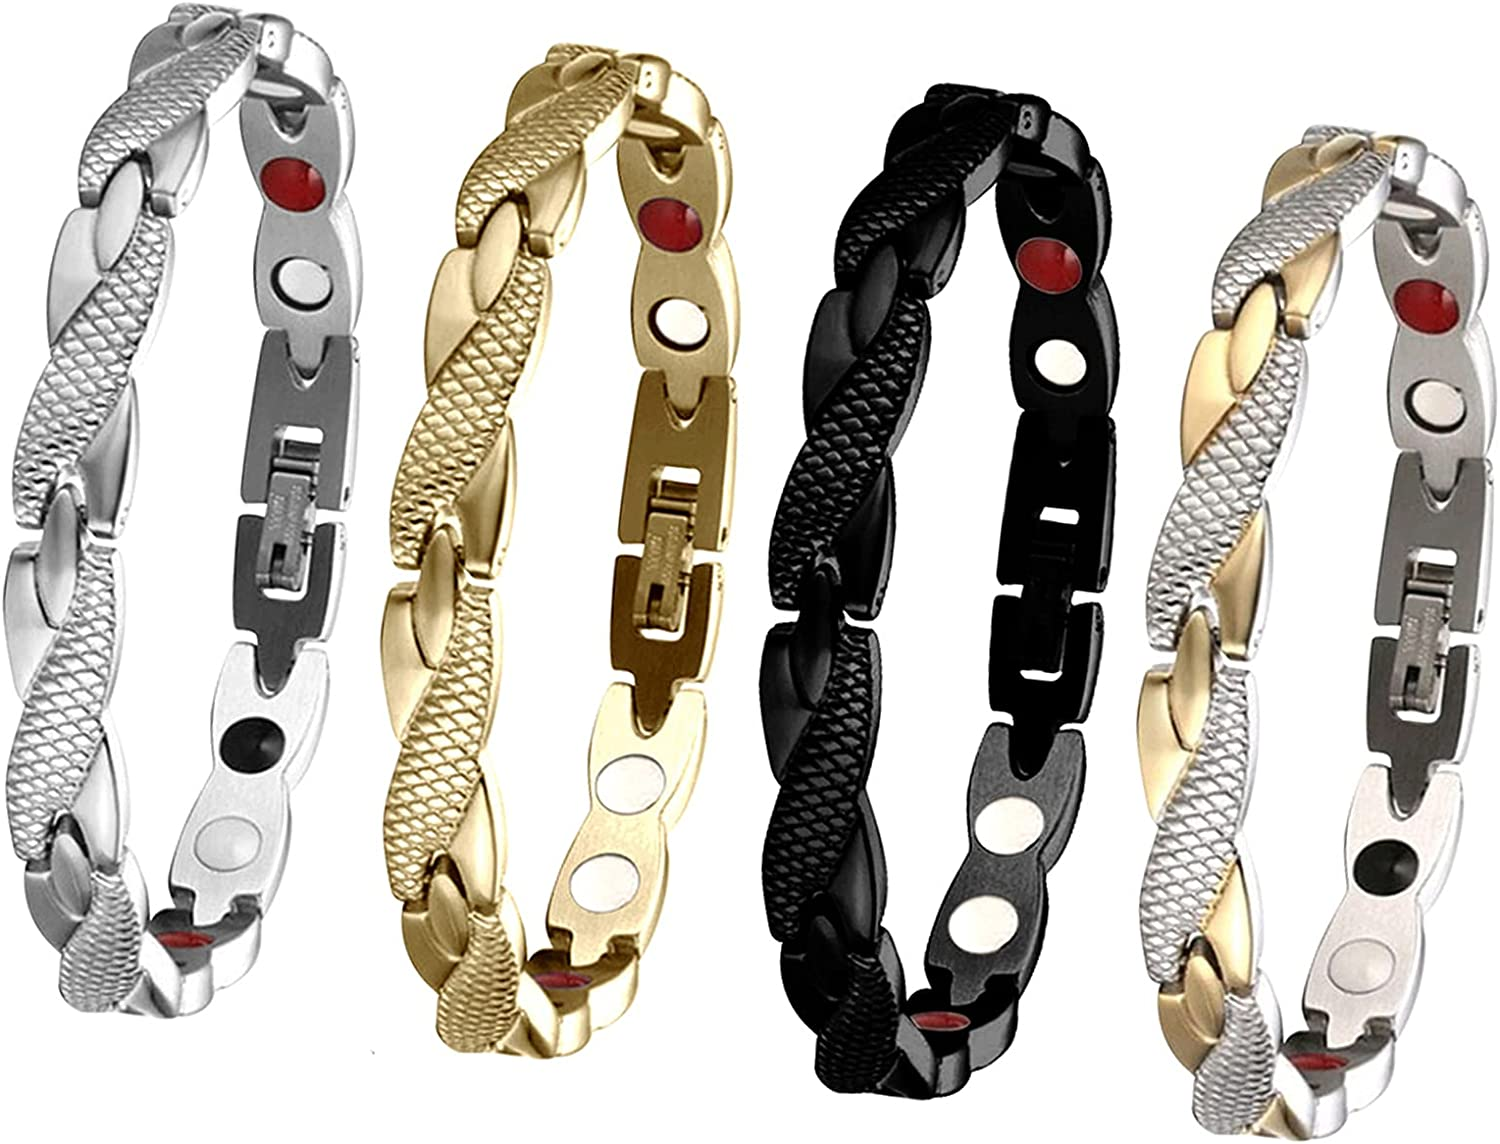 Elegant Magnetic Therapy Fit Limited Special Max 60% OFF Price Plus Slimming Weight Loss Bracelet